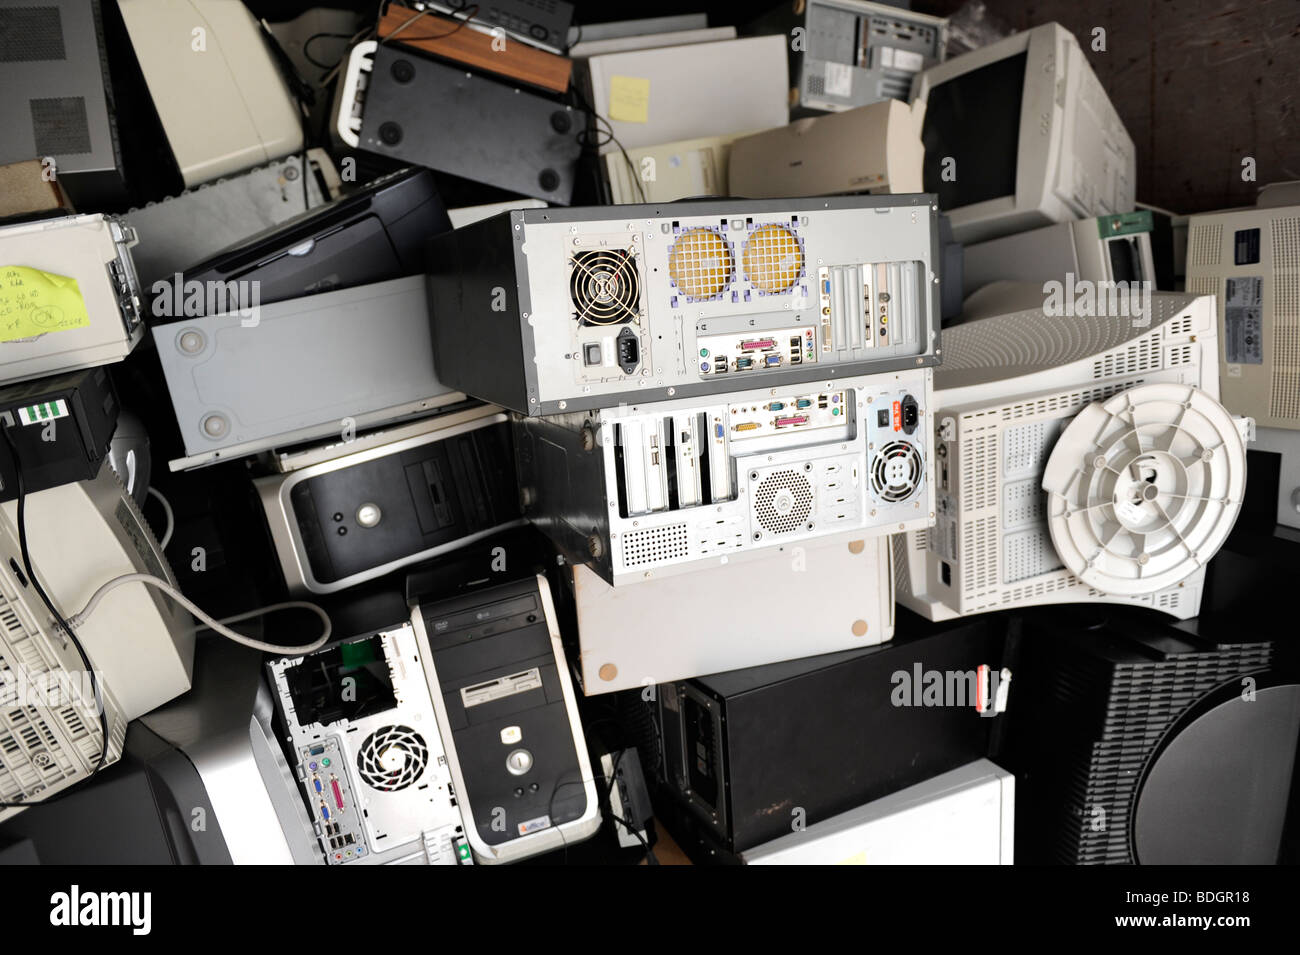 GERMANY HAMBURG collection and recycling of electronic scrap at public recycle collection place - Stock Image